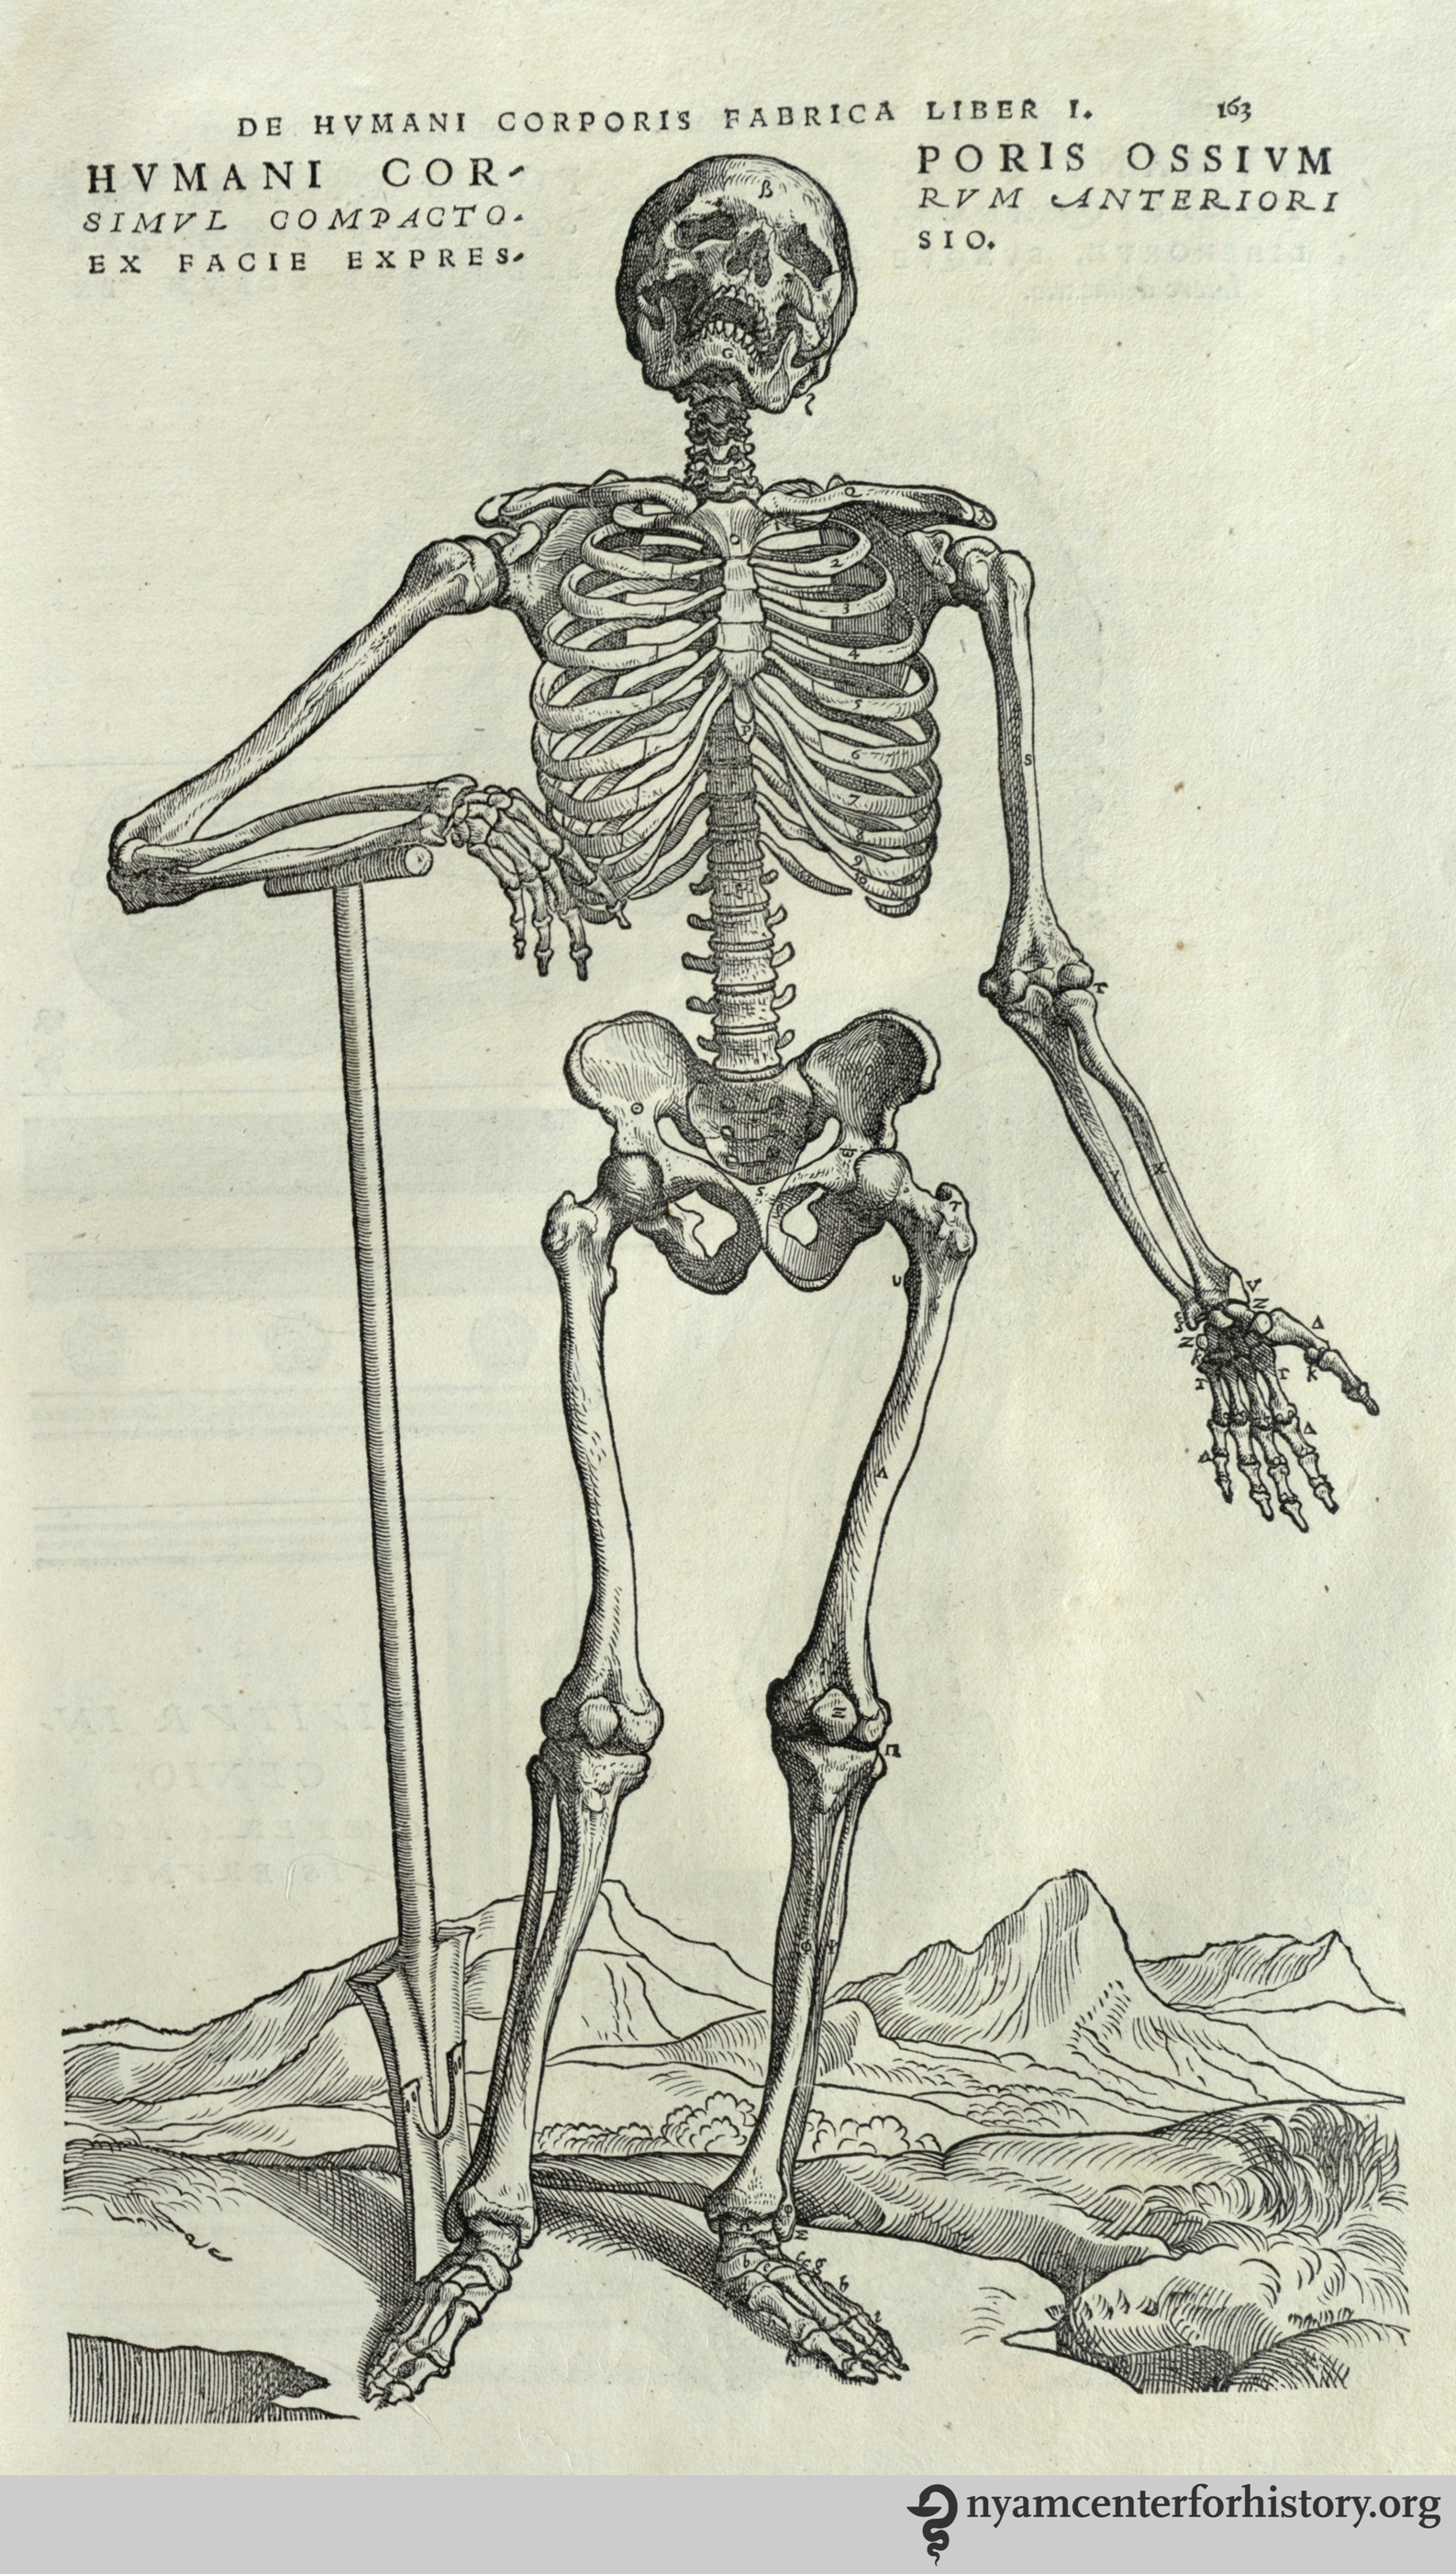 Andreas Vesalius | Books, Health and History